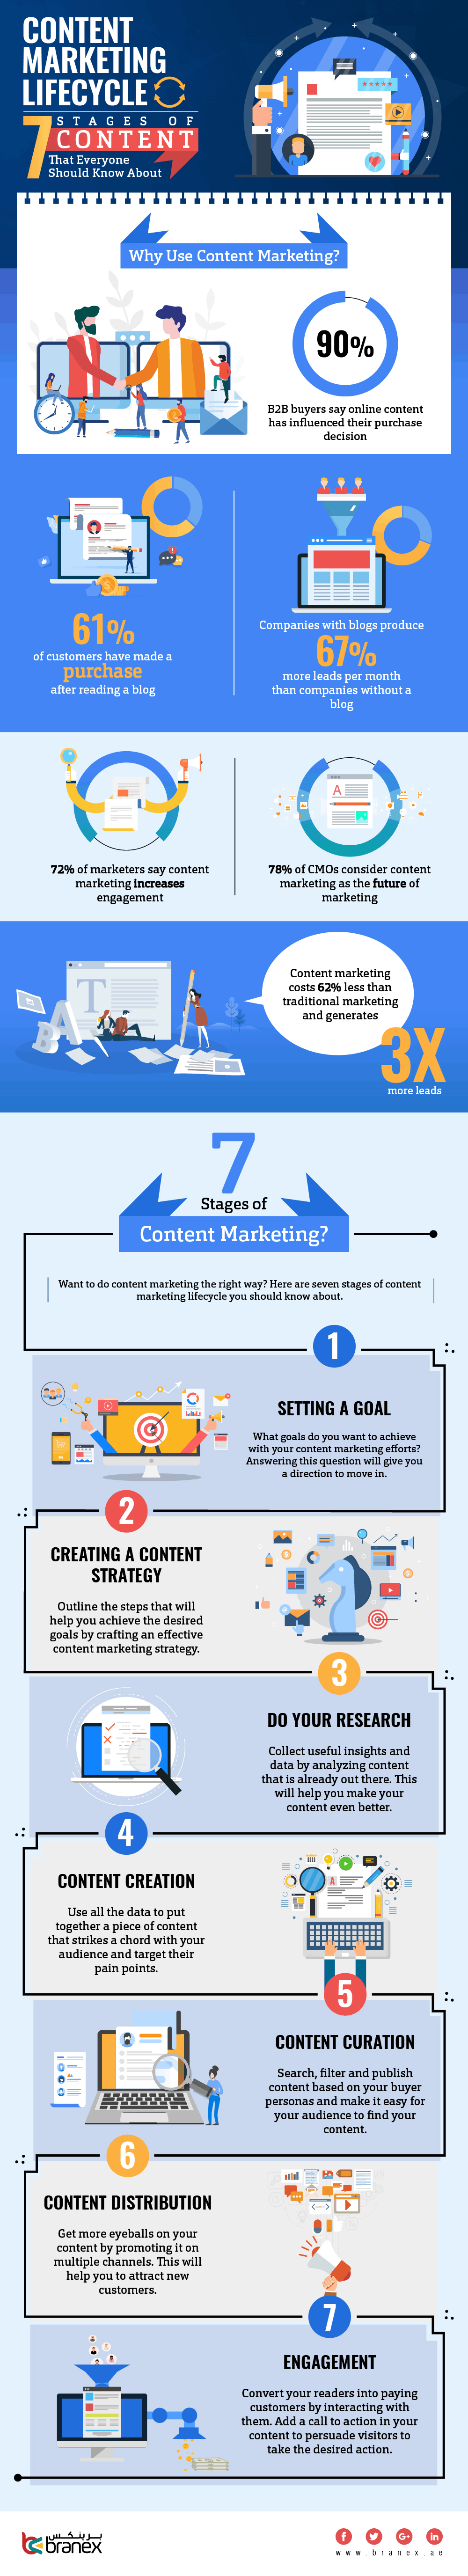 Infographic outlines key content marketing considerations and stats